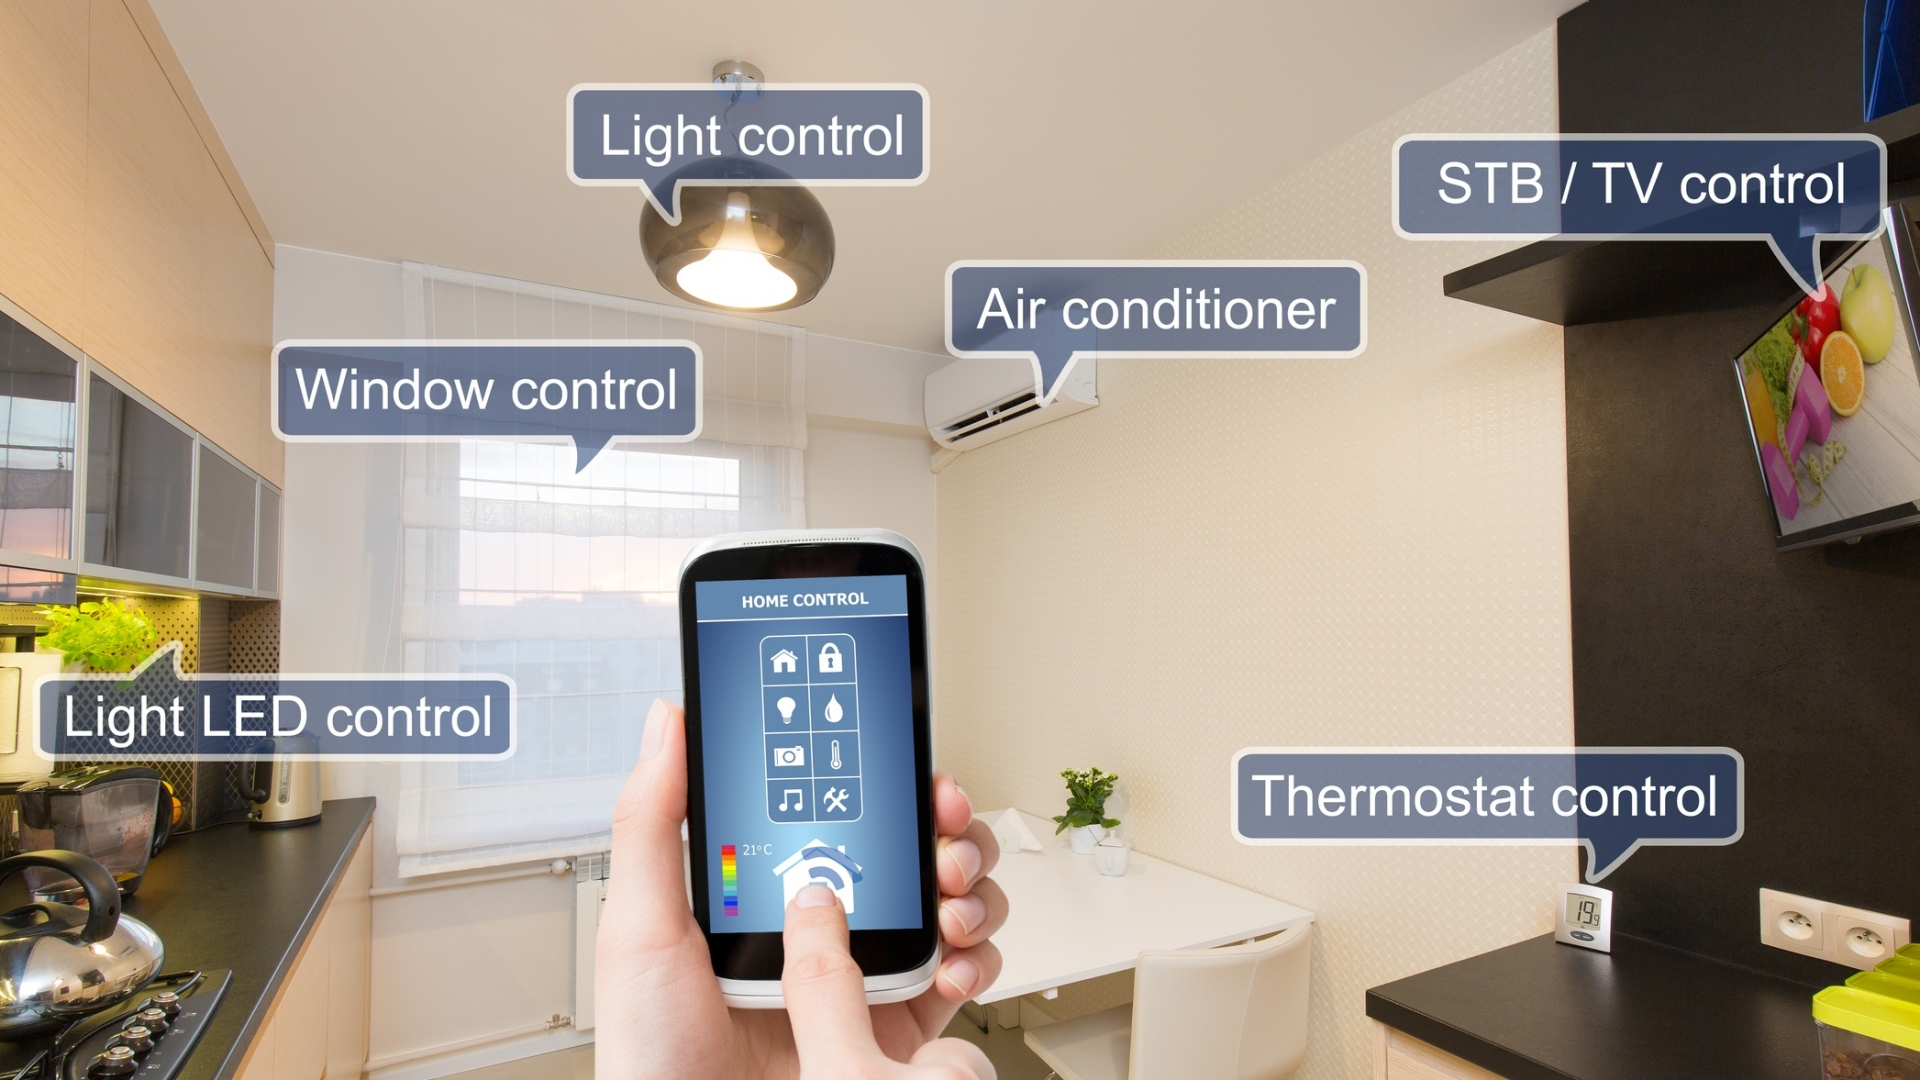 Smart home control with smartphone